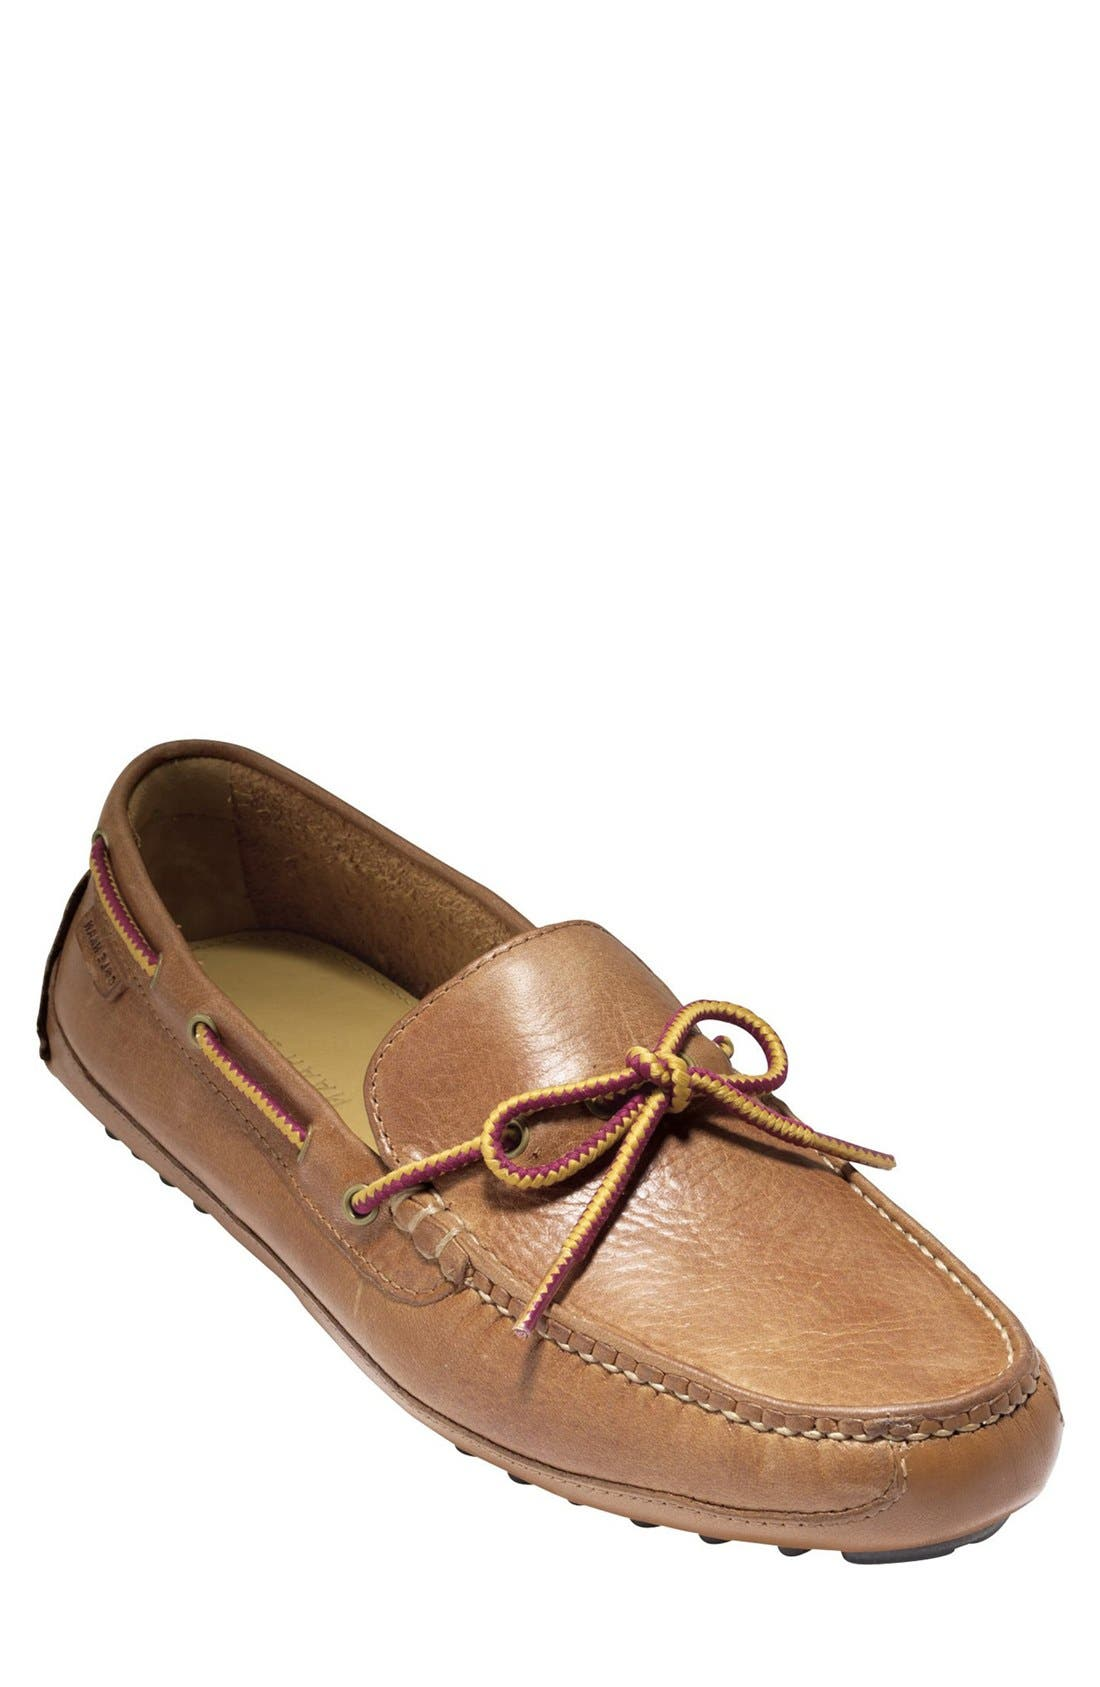 'Grant Canoe Camp' Driving Moccasin,                             Main thumbnail 1, color,                             British Tan